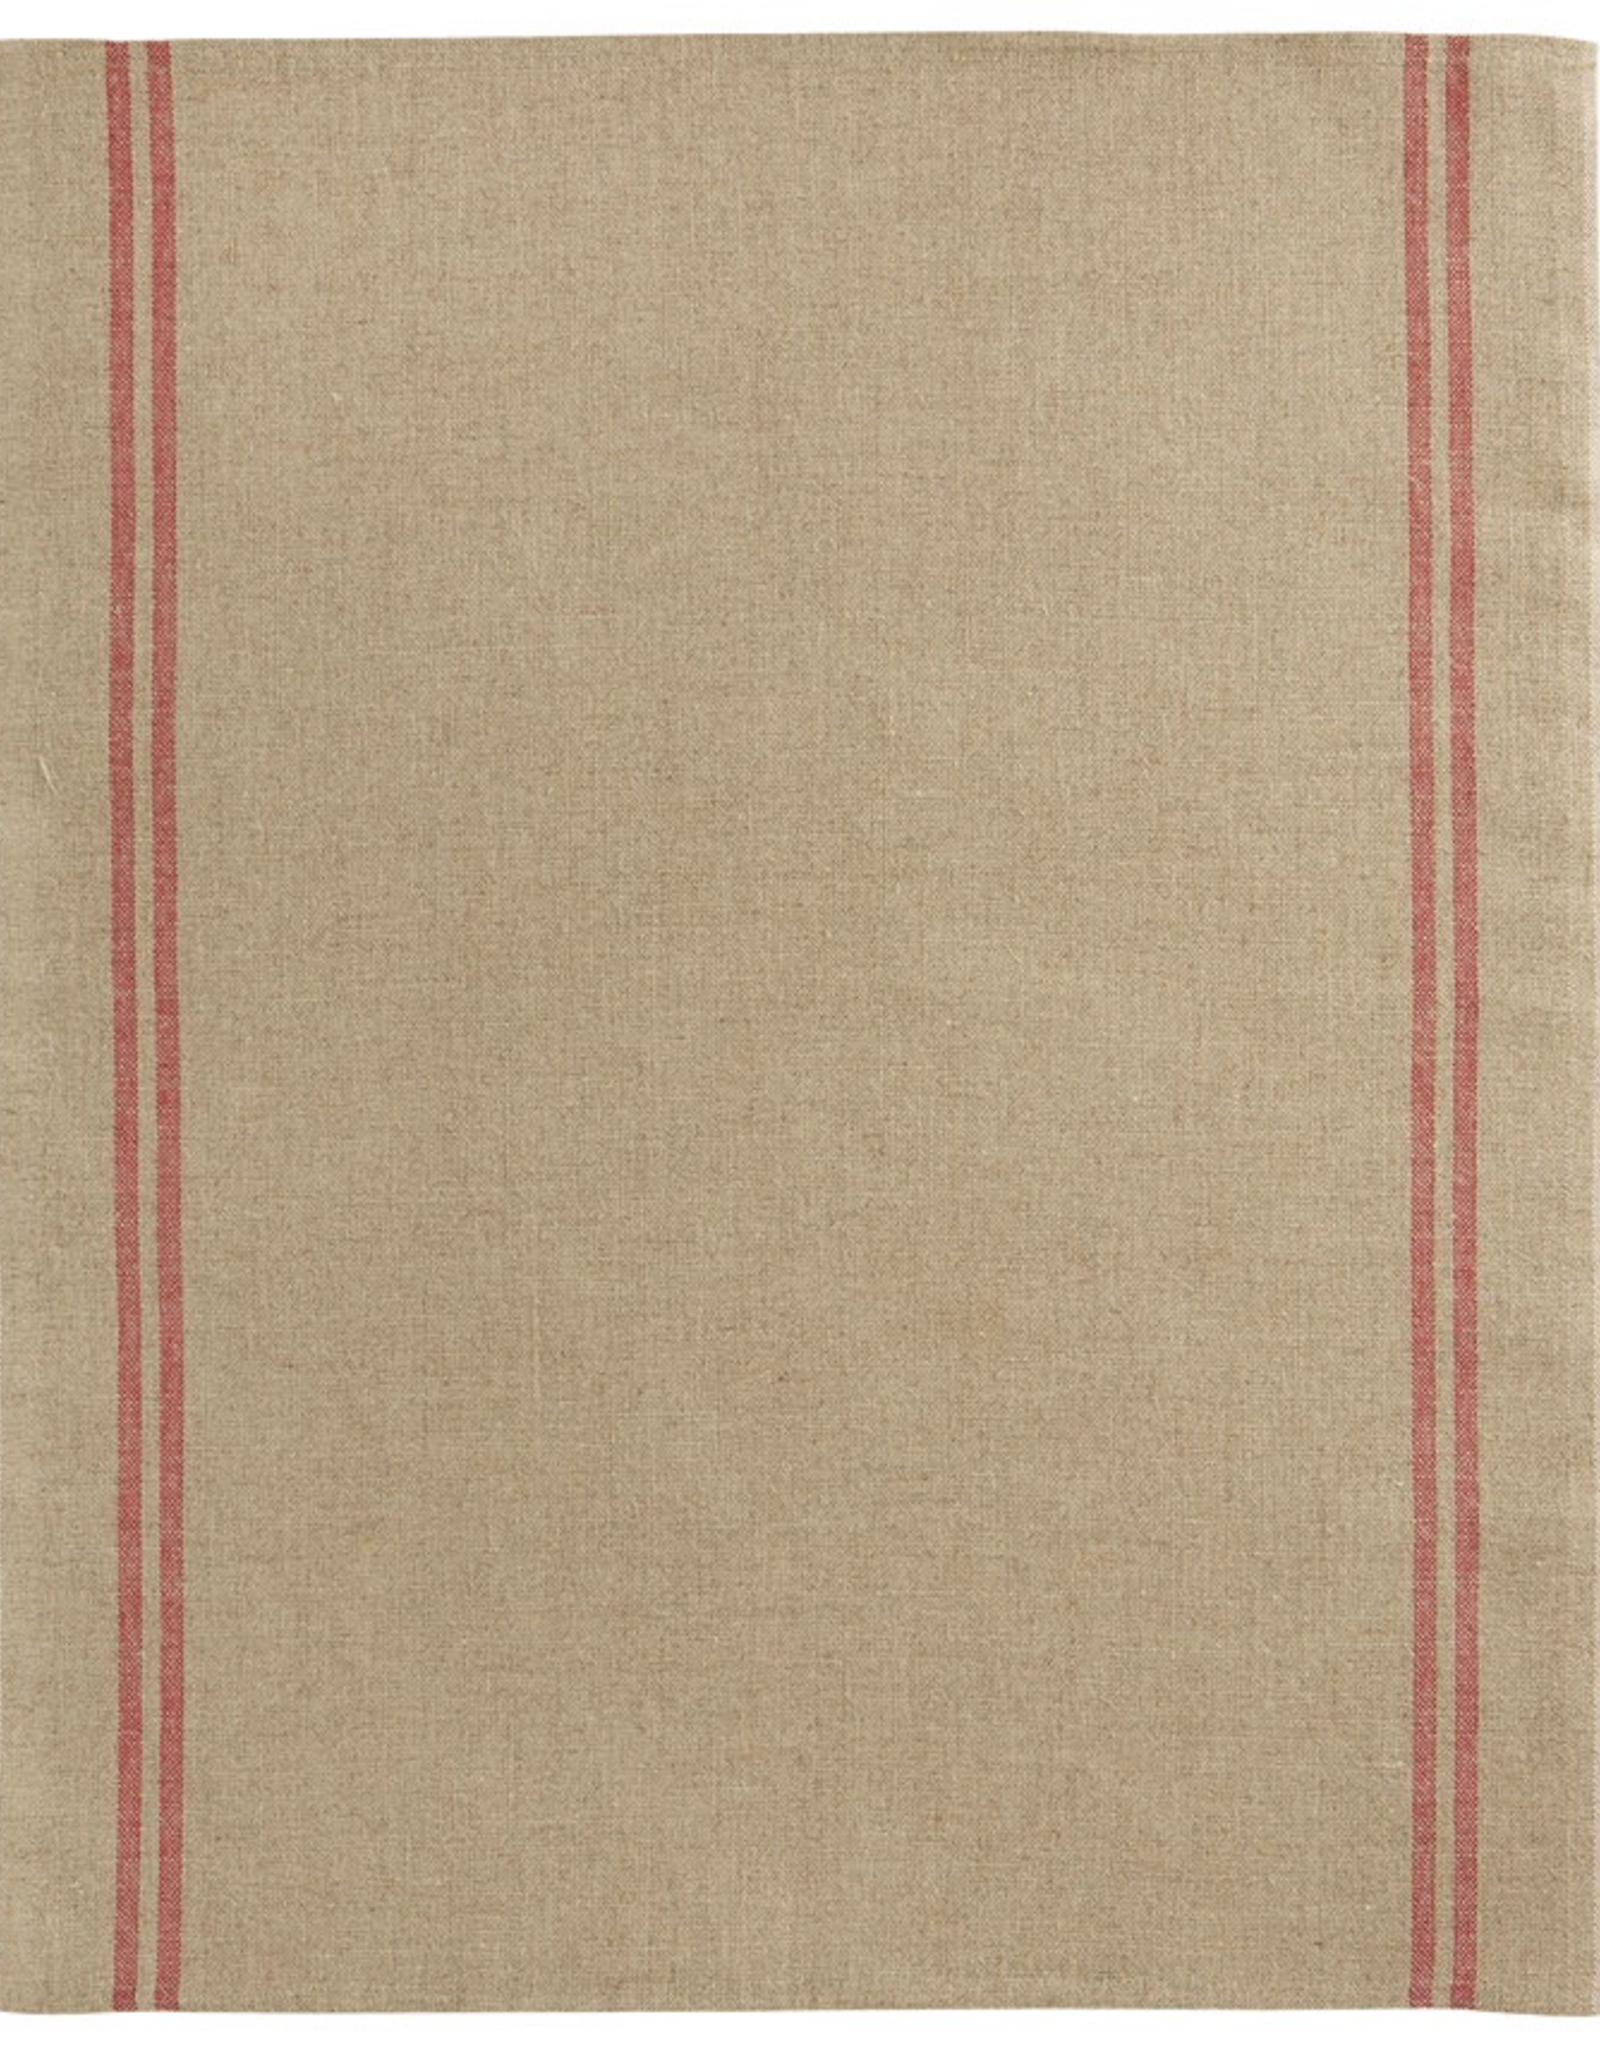 Tea Towel, Linen, Country Used Beige with Red Stripe